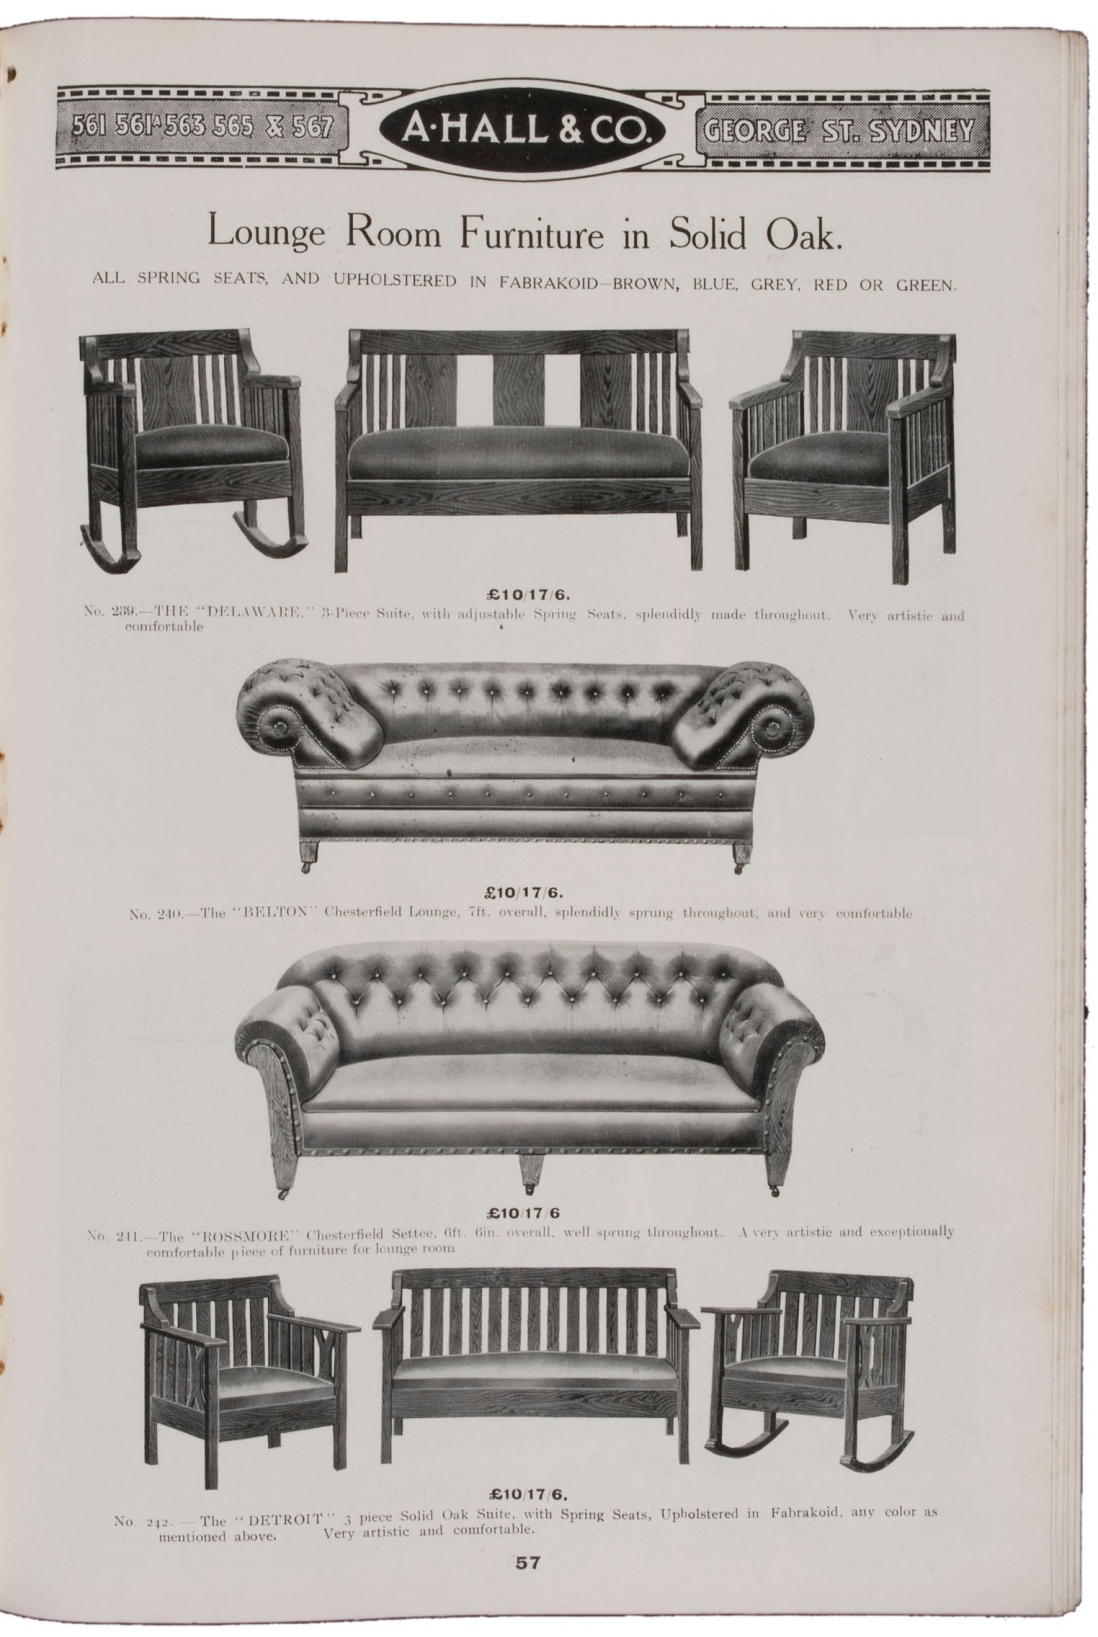 Black and white illustration showing lounges and arm chairs.